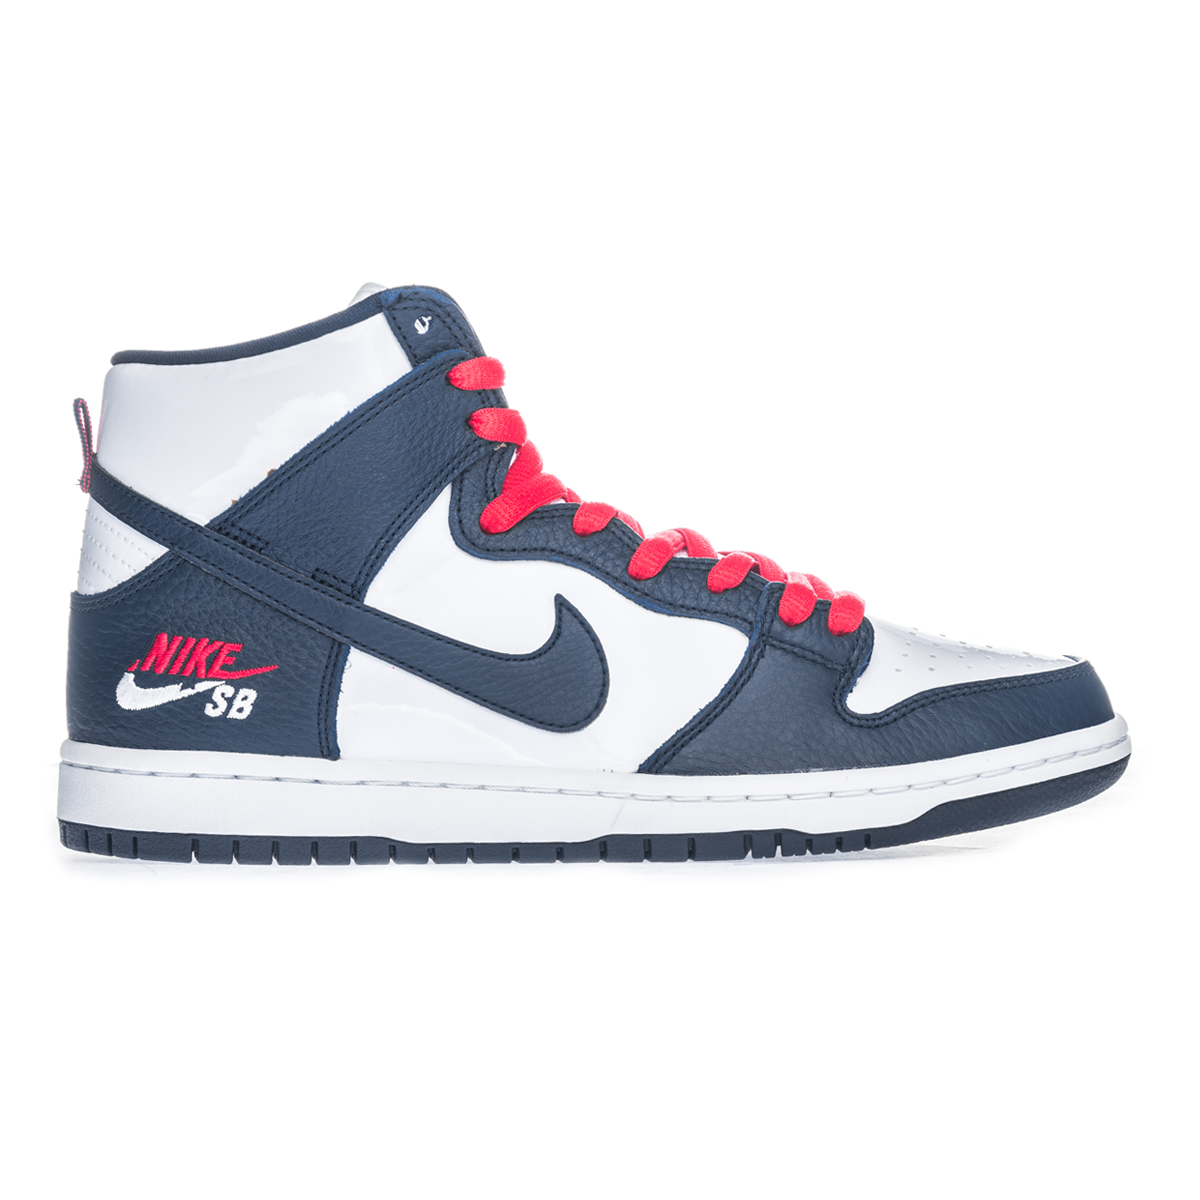 Buty Nike SB Zoom Dunk High Pro Obsidian / White